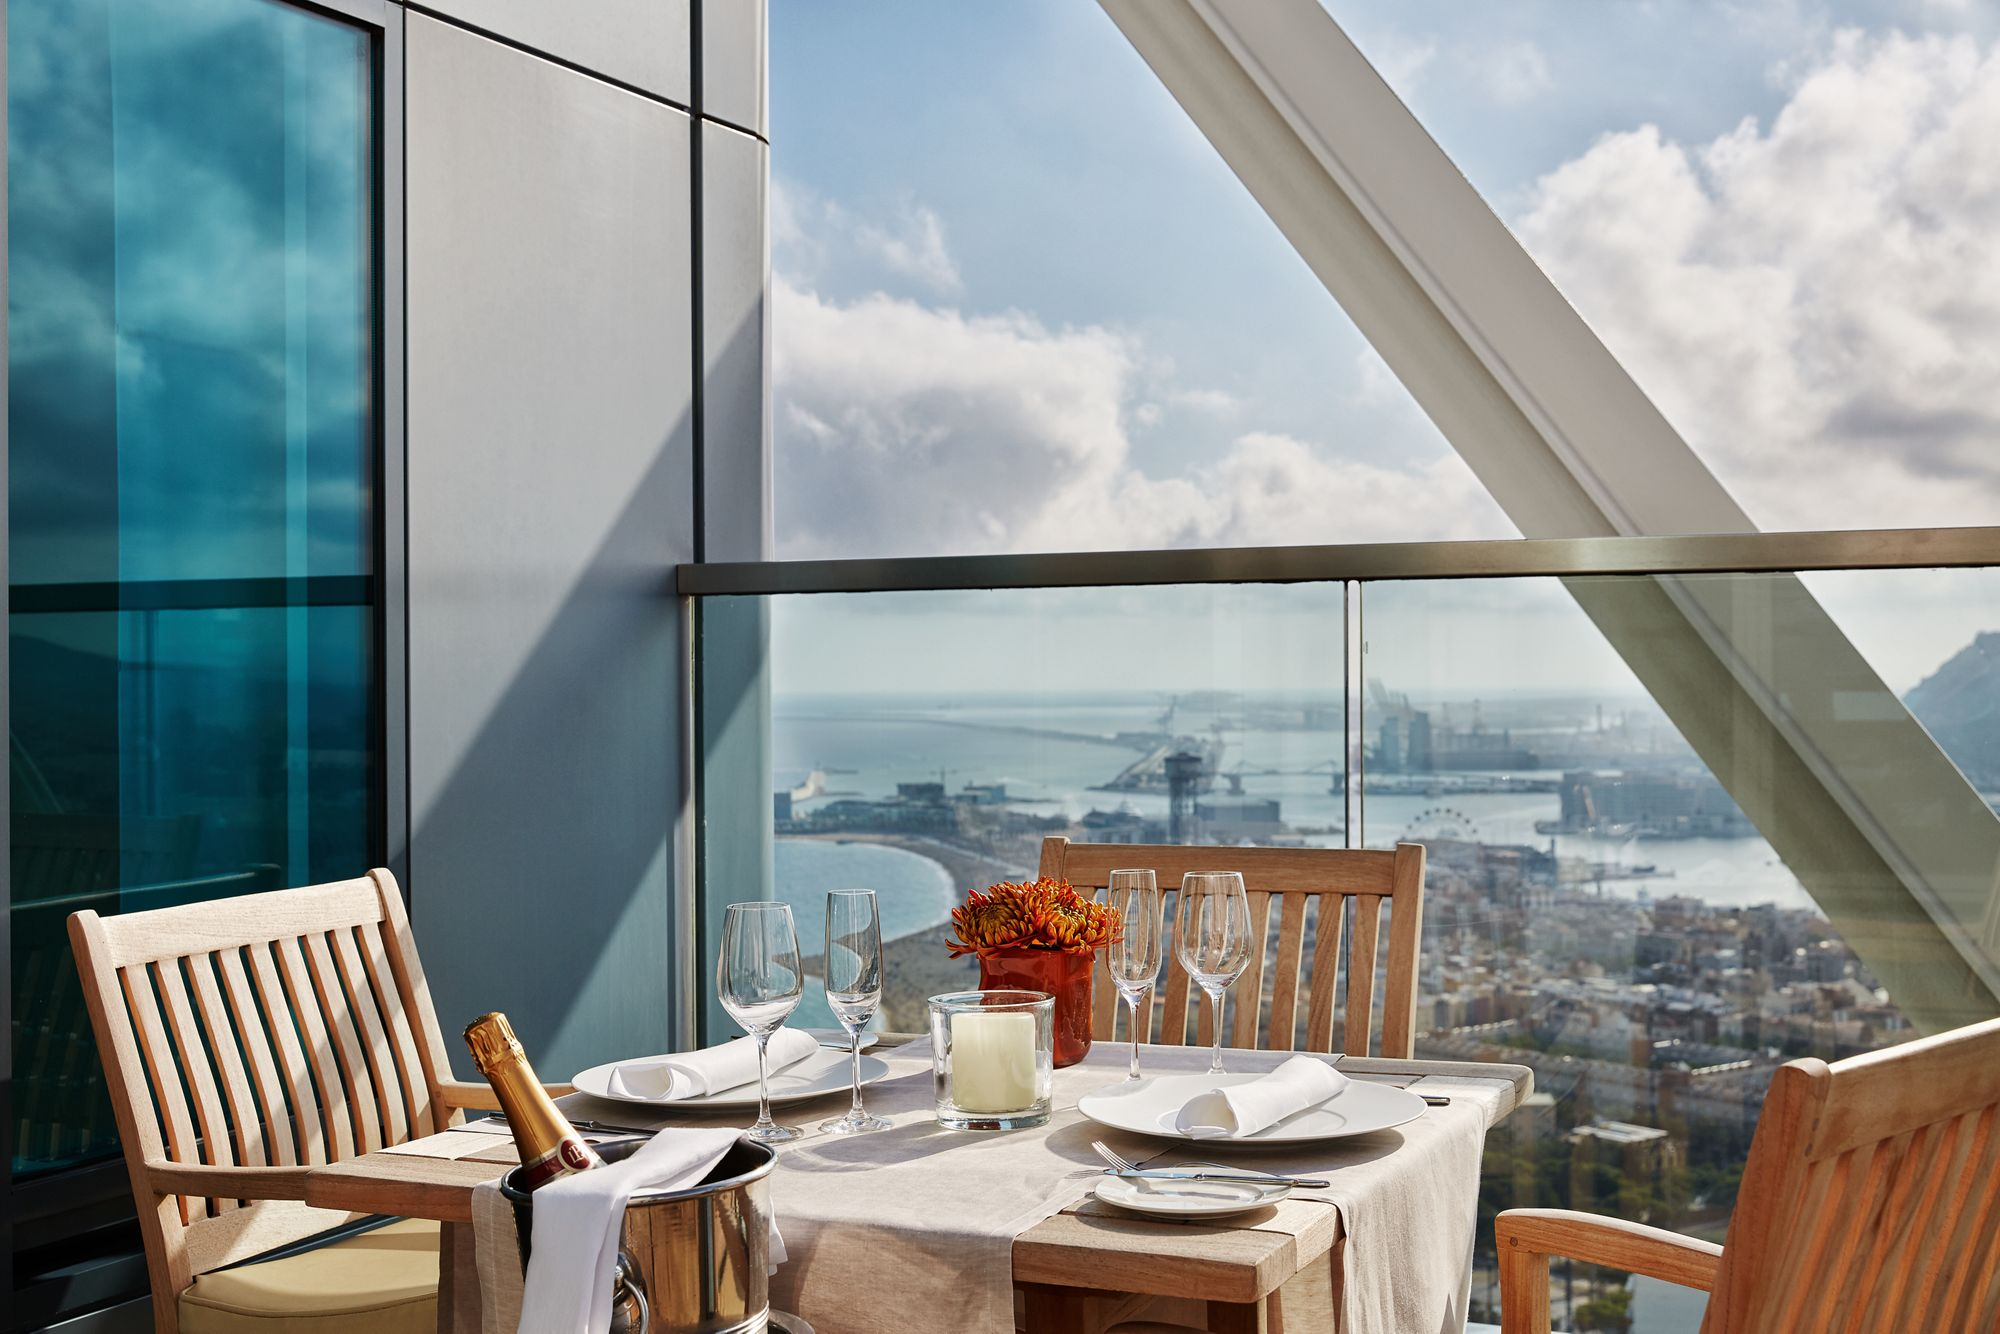 A dining table on a terrace overlooking the city and sea